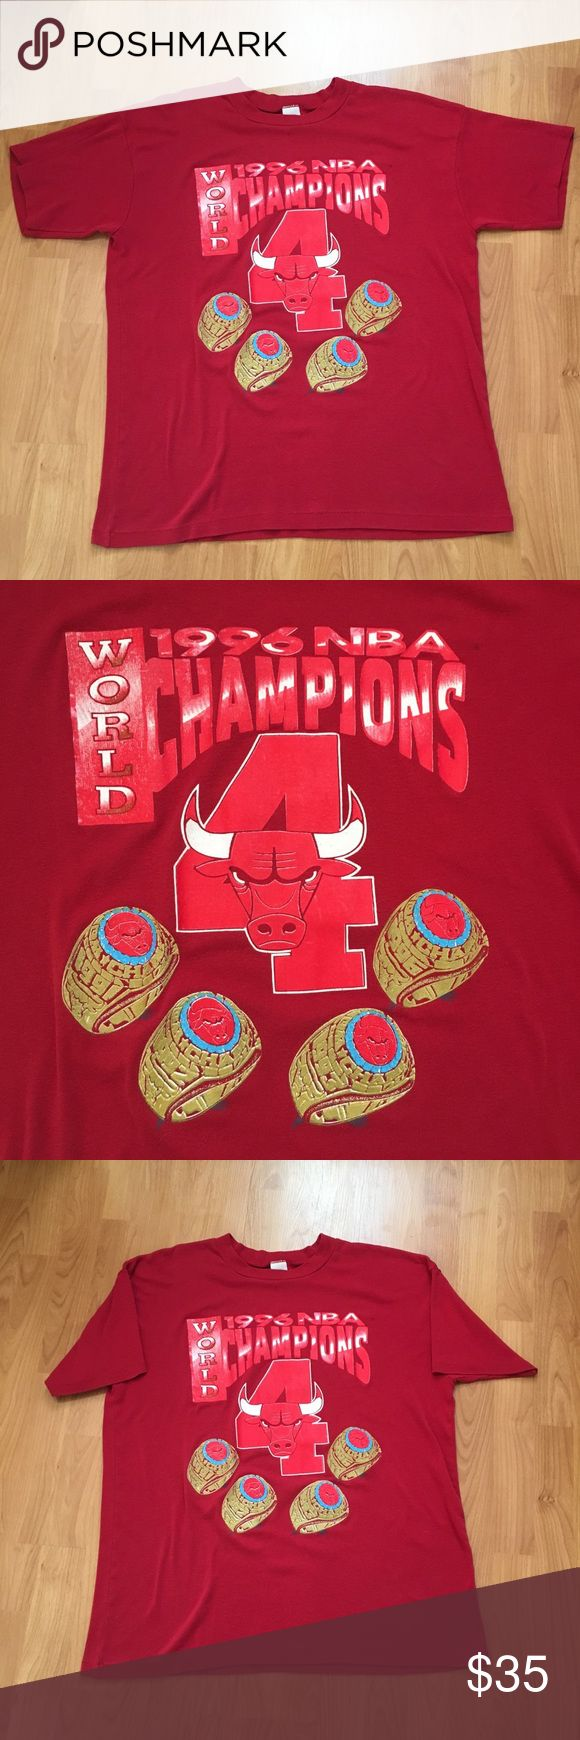 Vtg Chicago Bulls 1996 NBA Champions T-Shirt Vintage Chicago Bulls 1996 NBA World Champions       T-shirt. Rad image of the Bulls Champion ship rings. The image and wording is raised. Tag is cut out and thus missing. Measurements below. One spot on front of shirt as shown in last photo.  Armpit to Armpit: 24 inches  Length: 29.5 inches Shirts Tees - Short Sleeve